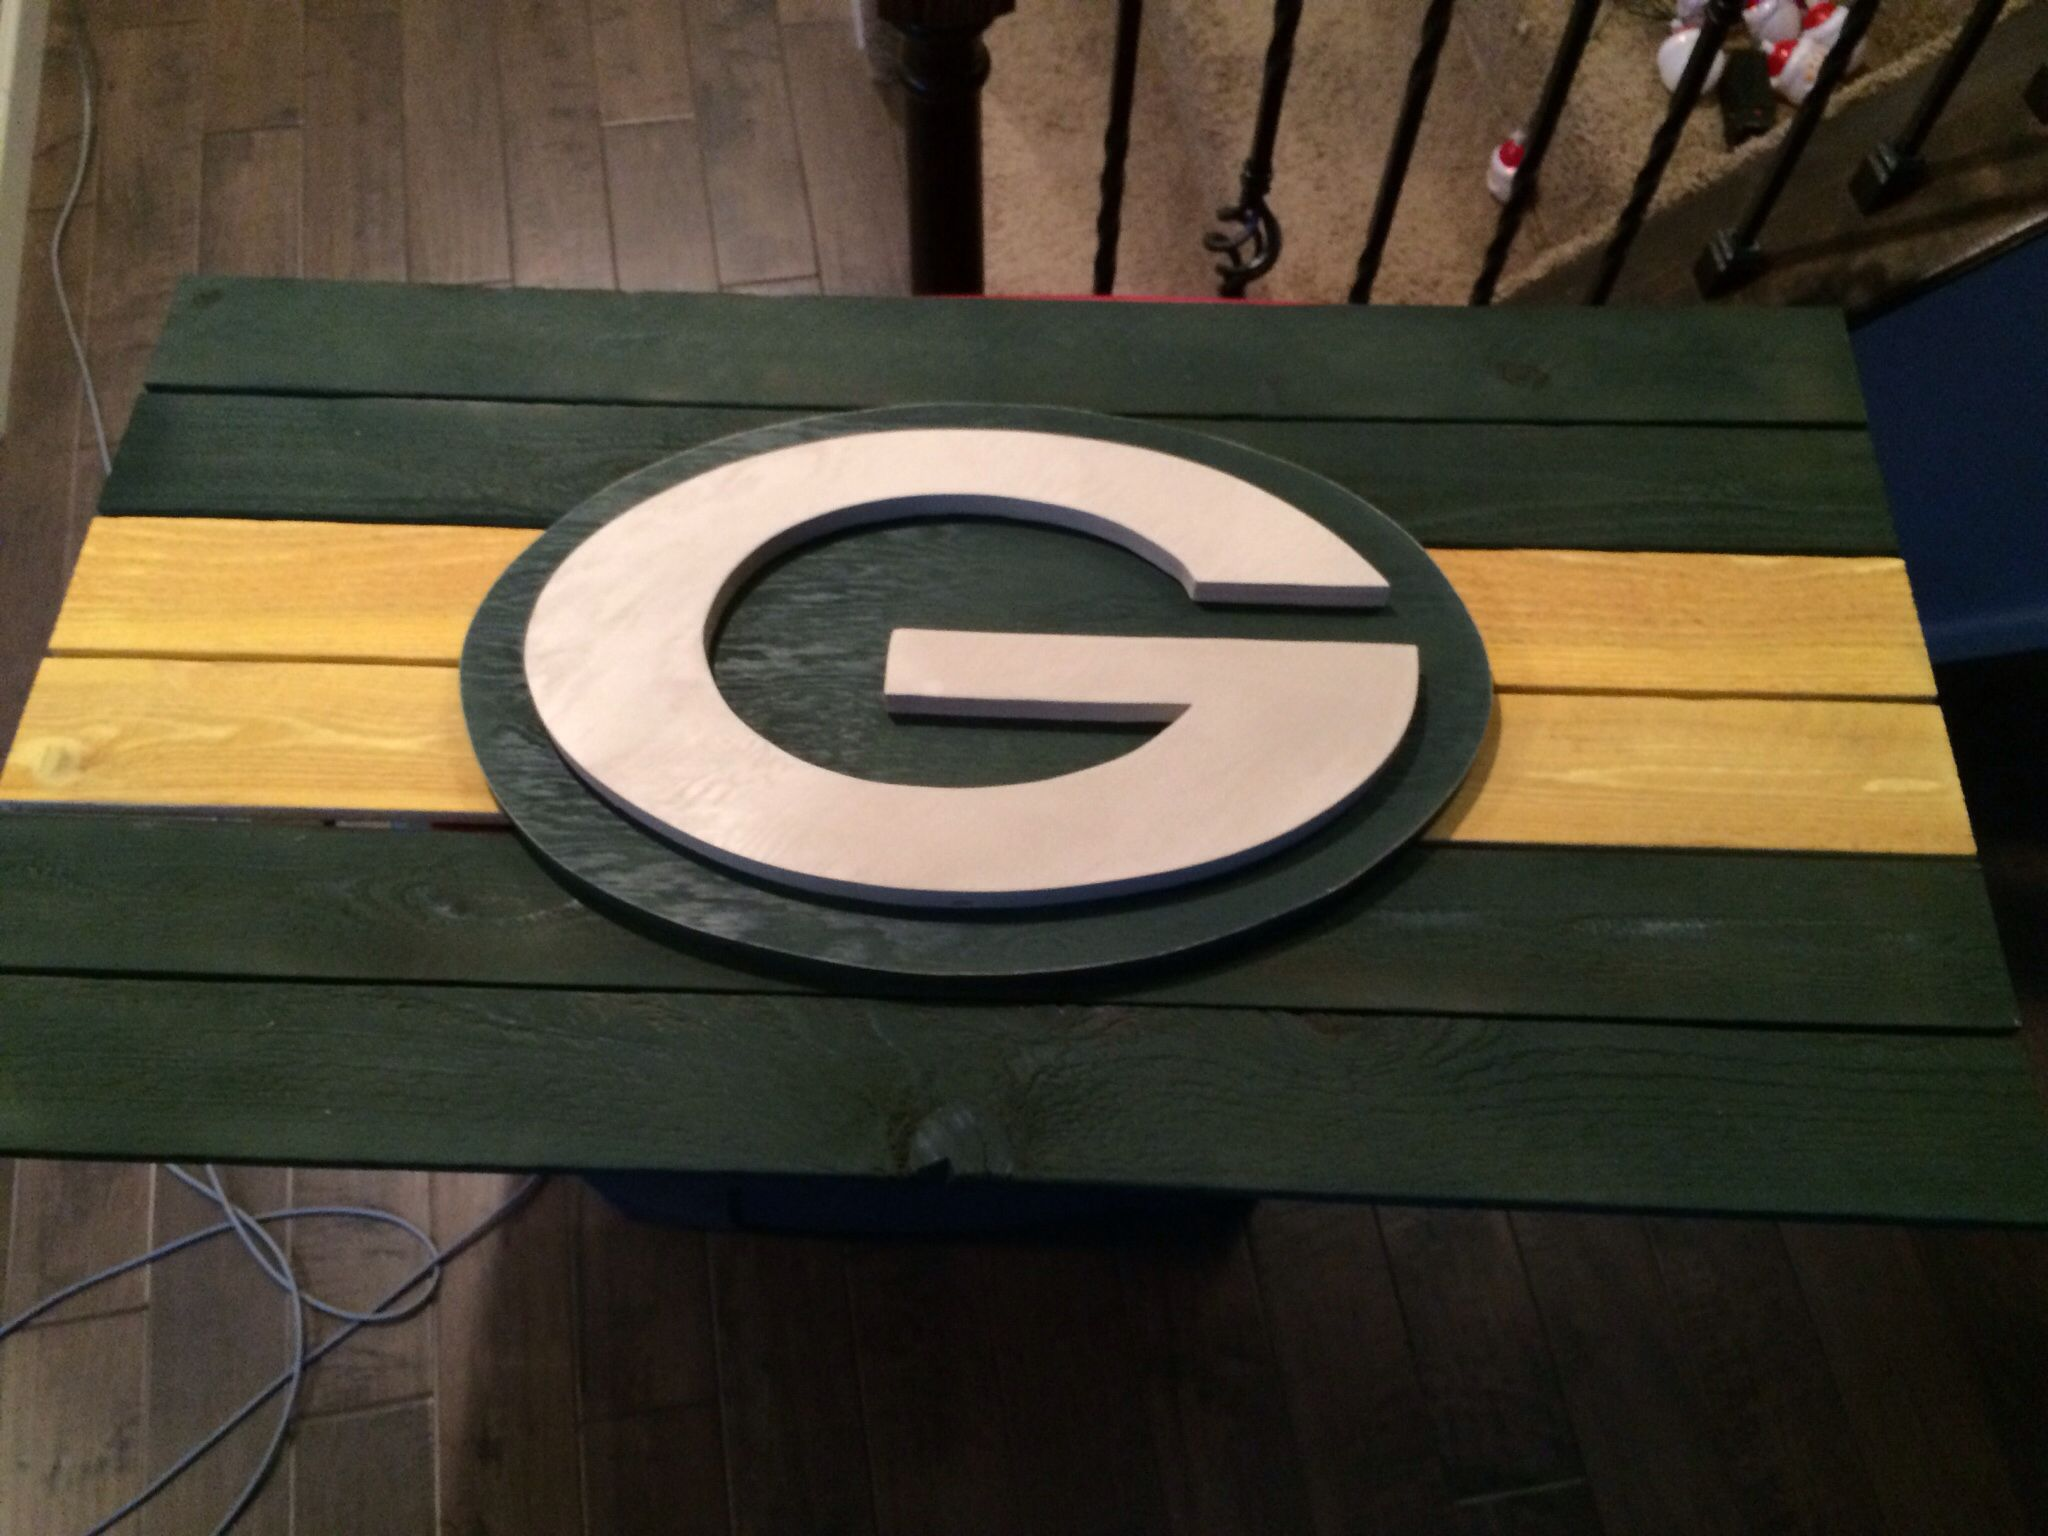 Green Bay Packers Sign 150 For Sale In The Denver Metro Area Https Www Facebook Com Pages W Green Bay Packers Crafts Weekend Woodworking Projects Pallet Art